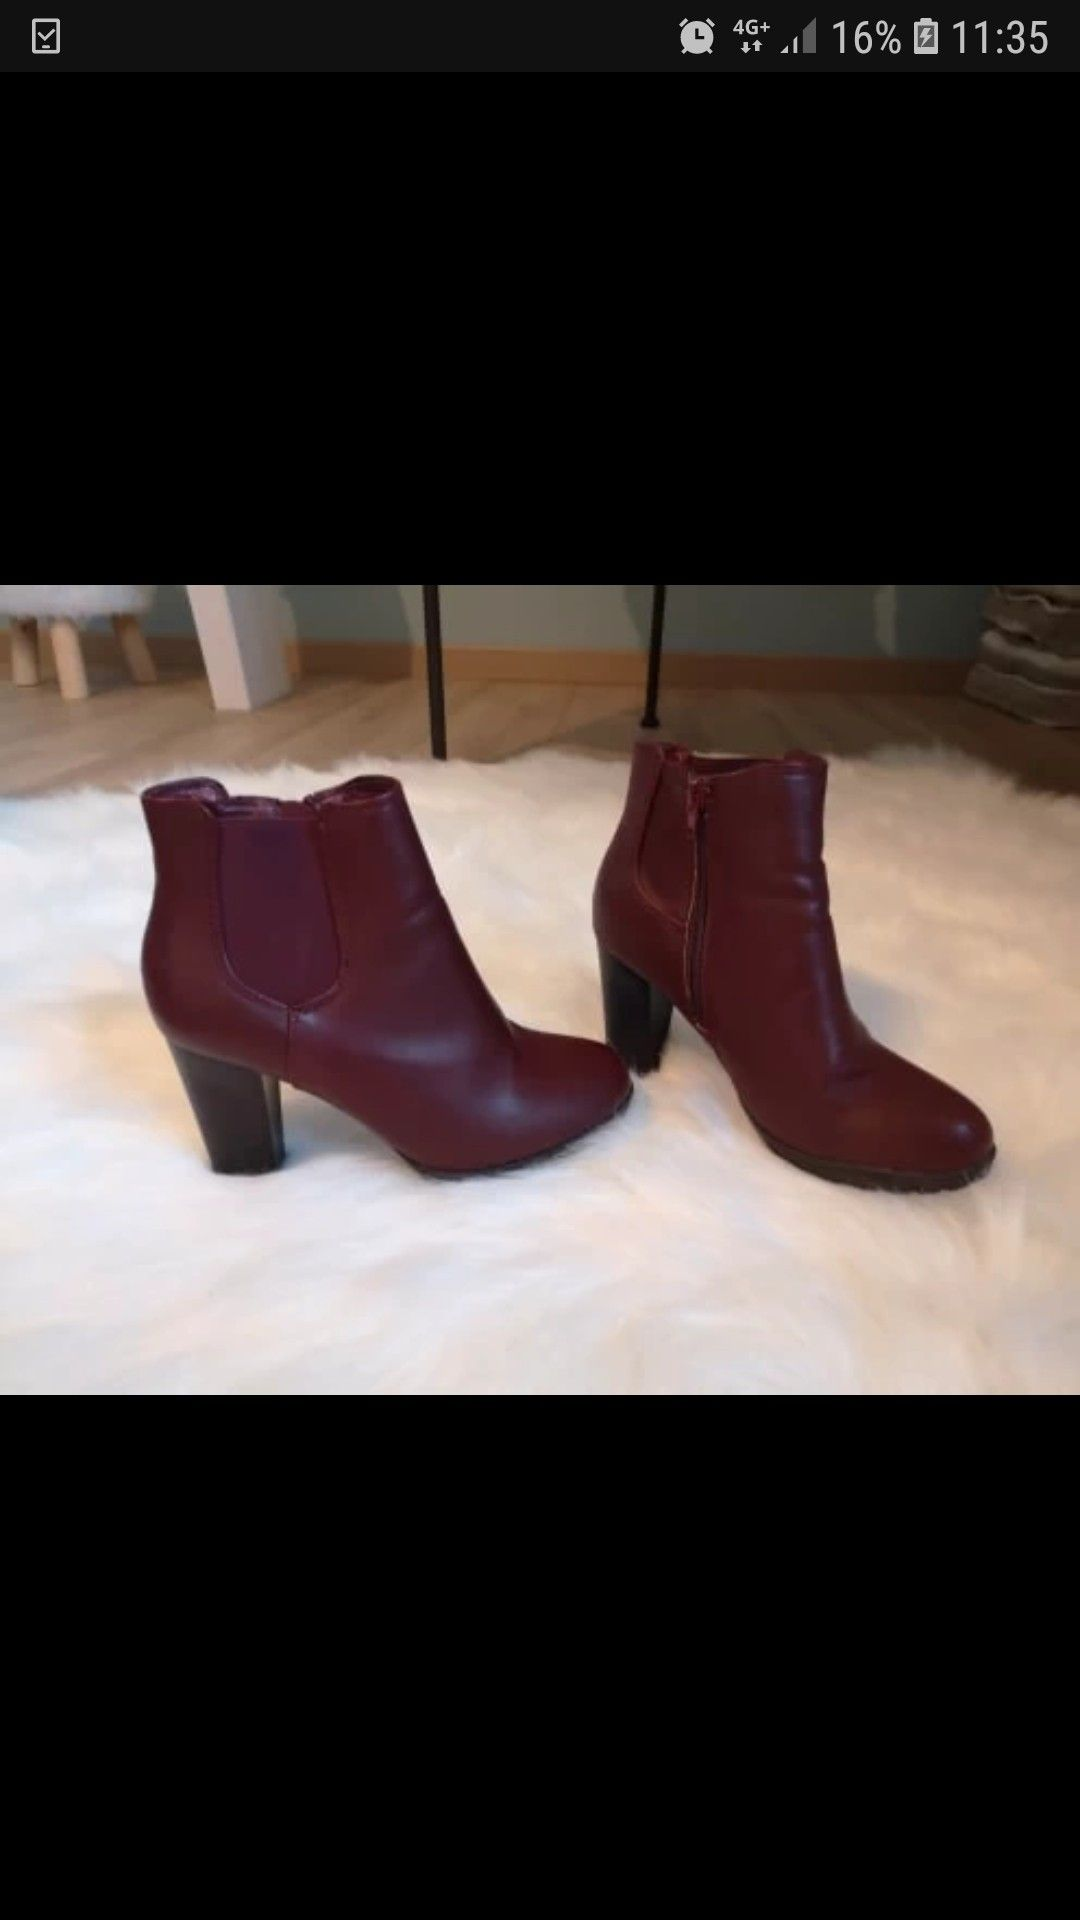 6462021a8fc0 Bottines bordeau achetee sur Vinted